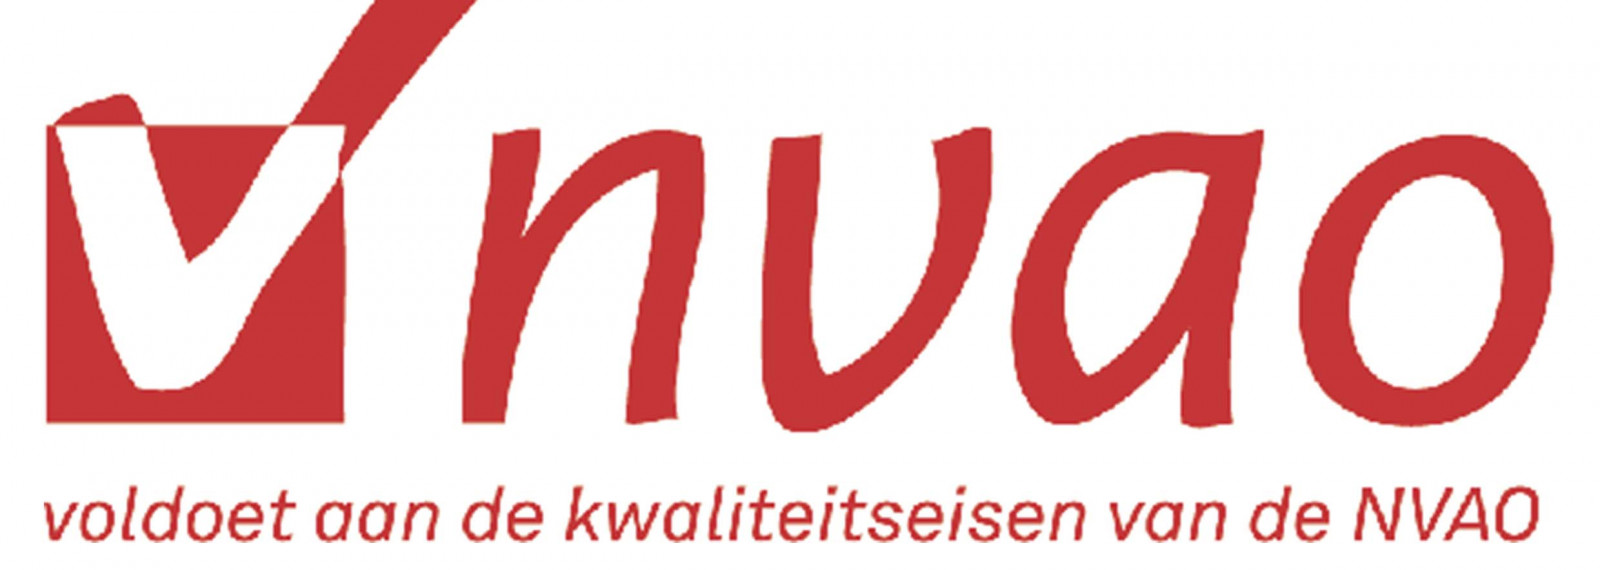 Program Bachelor of Social Work of the Faculty of Social and Behavioral Sciences positively assessed by the NVAO